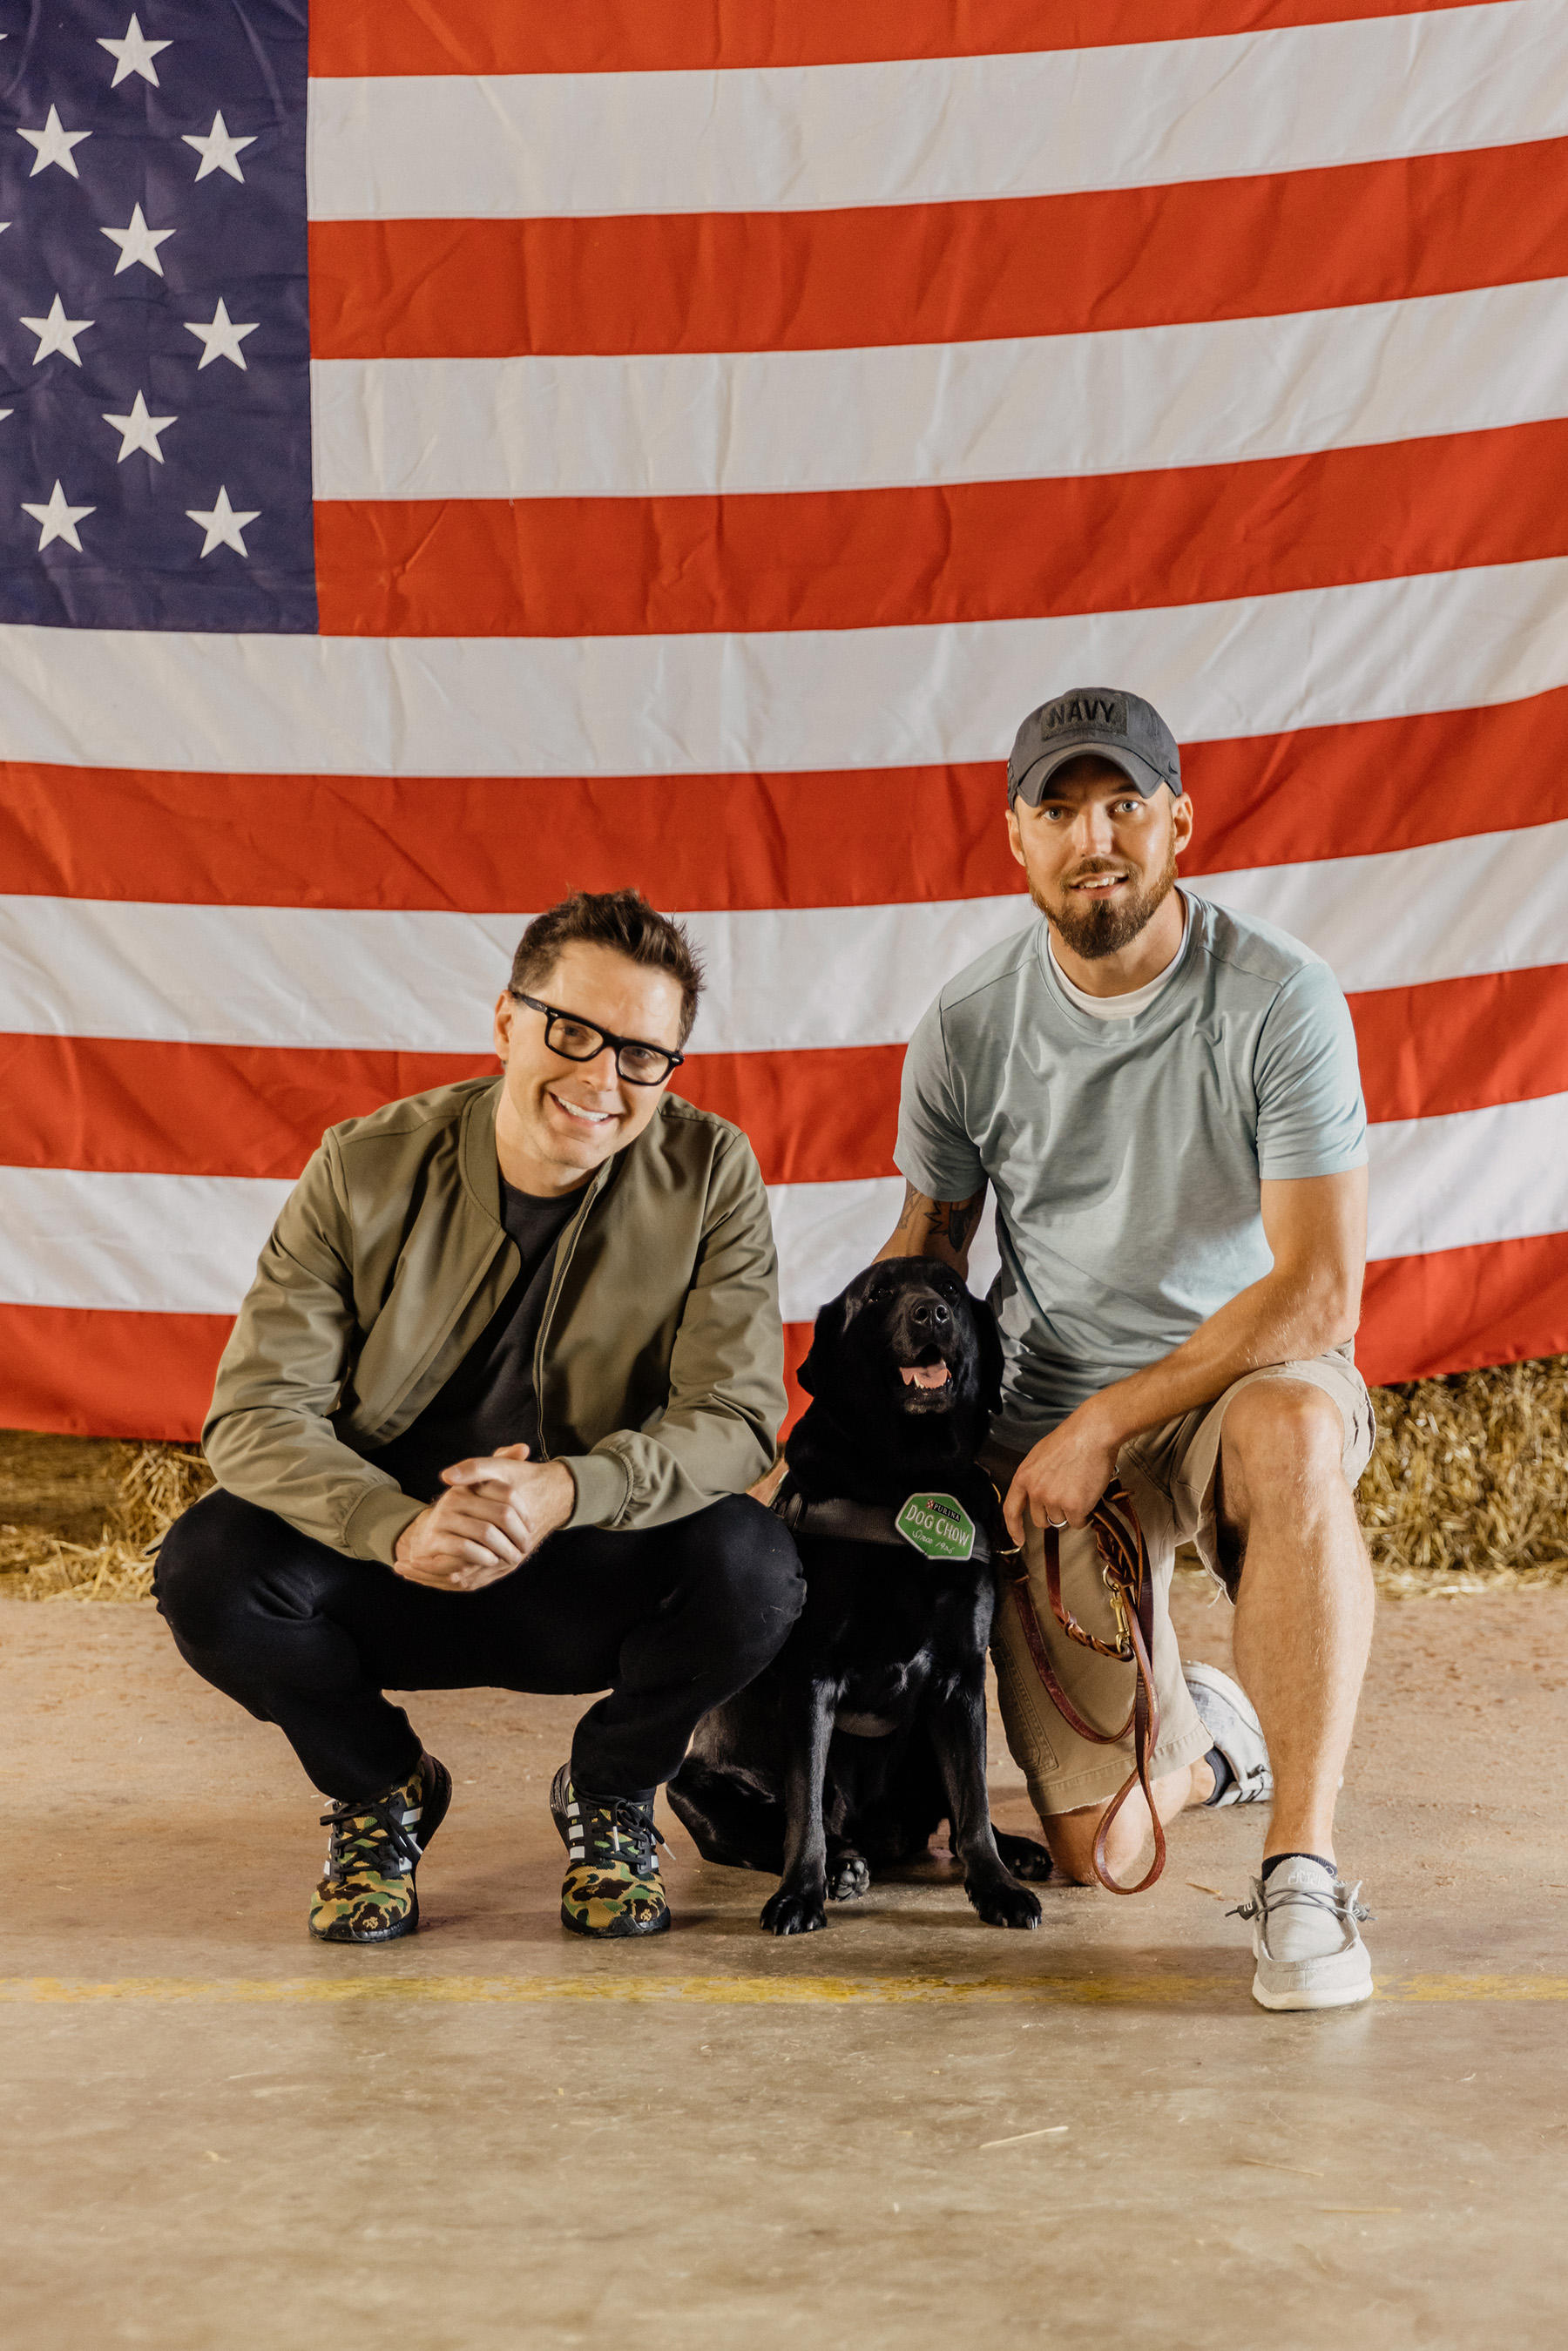 Dog Chow partner and TV/radio personality Bobby Bones with Veteran Andy and his service dog Thanos participate in the fourth annual Dog Chow Service Dog Salute campaign